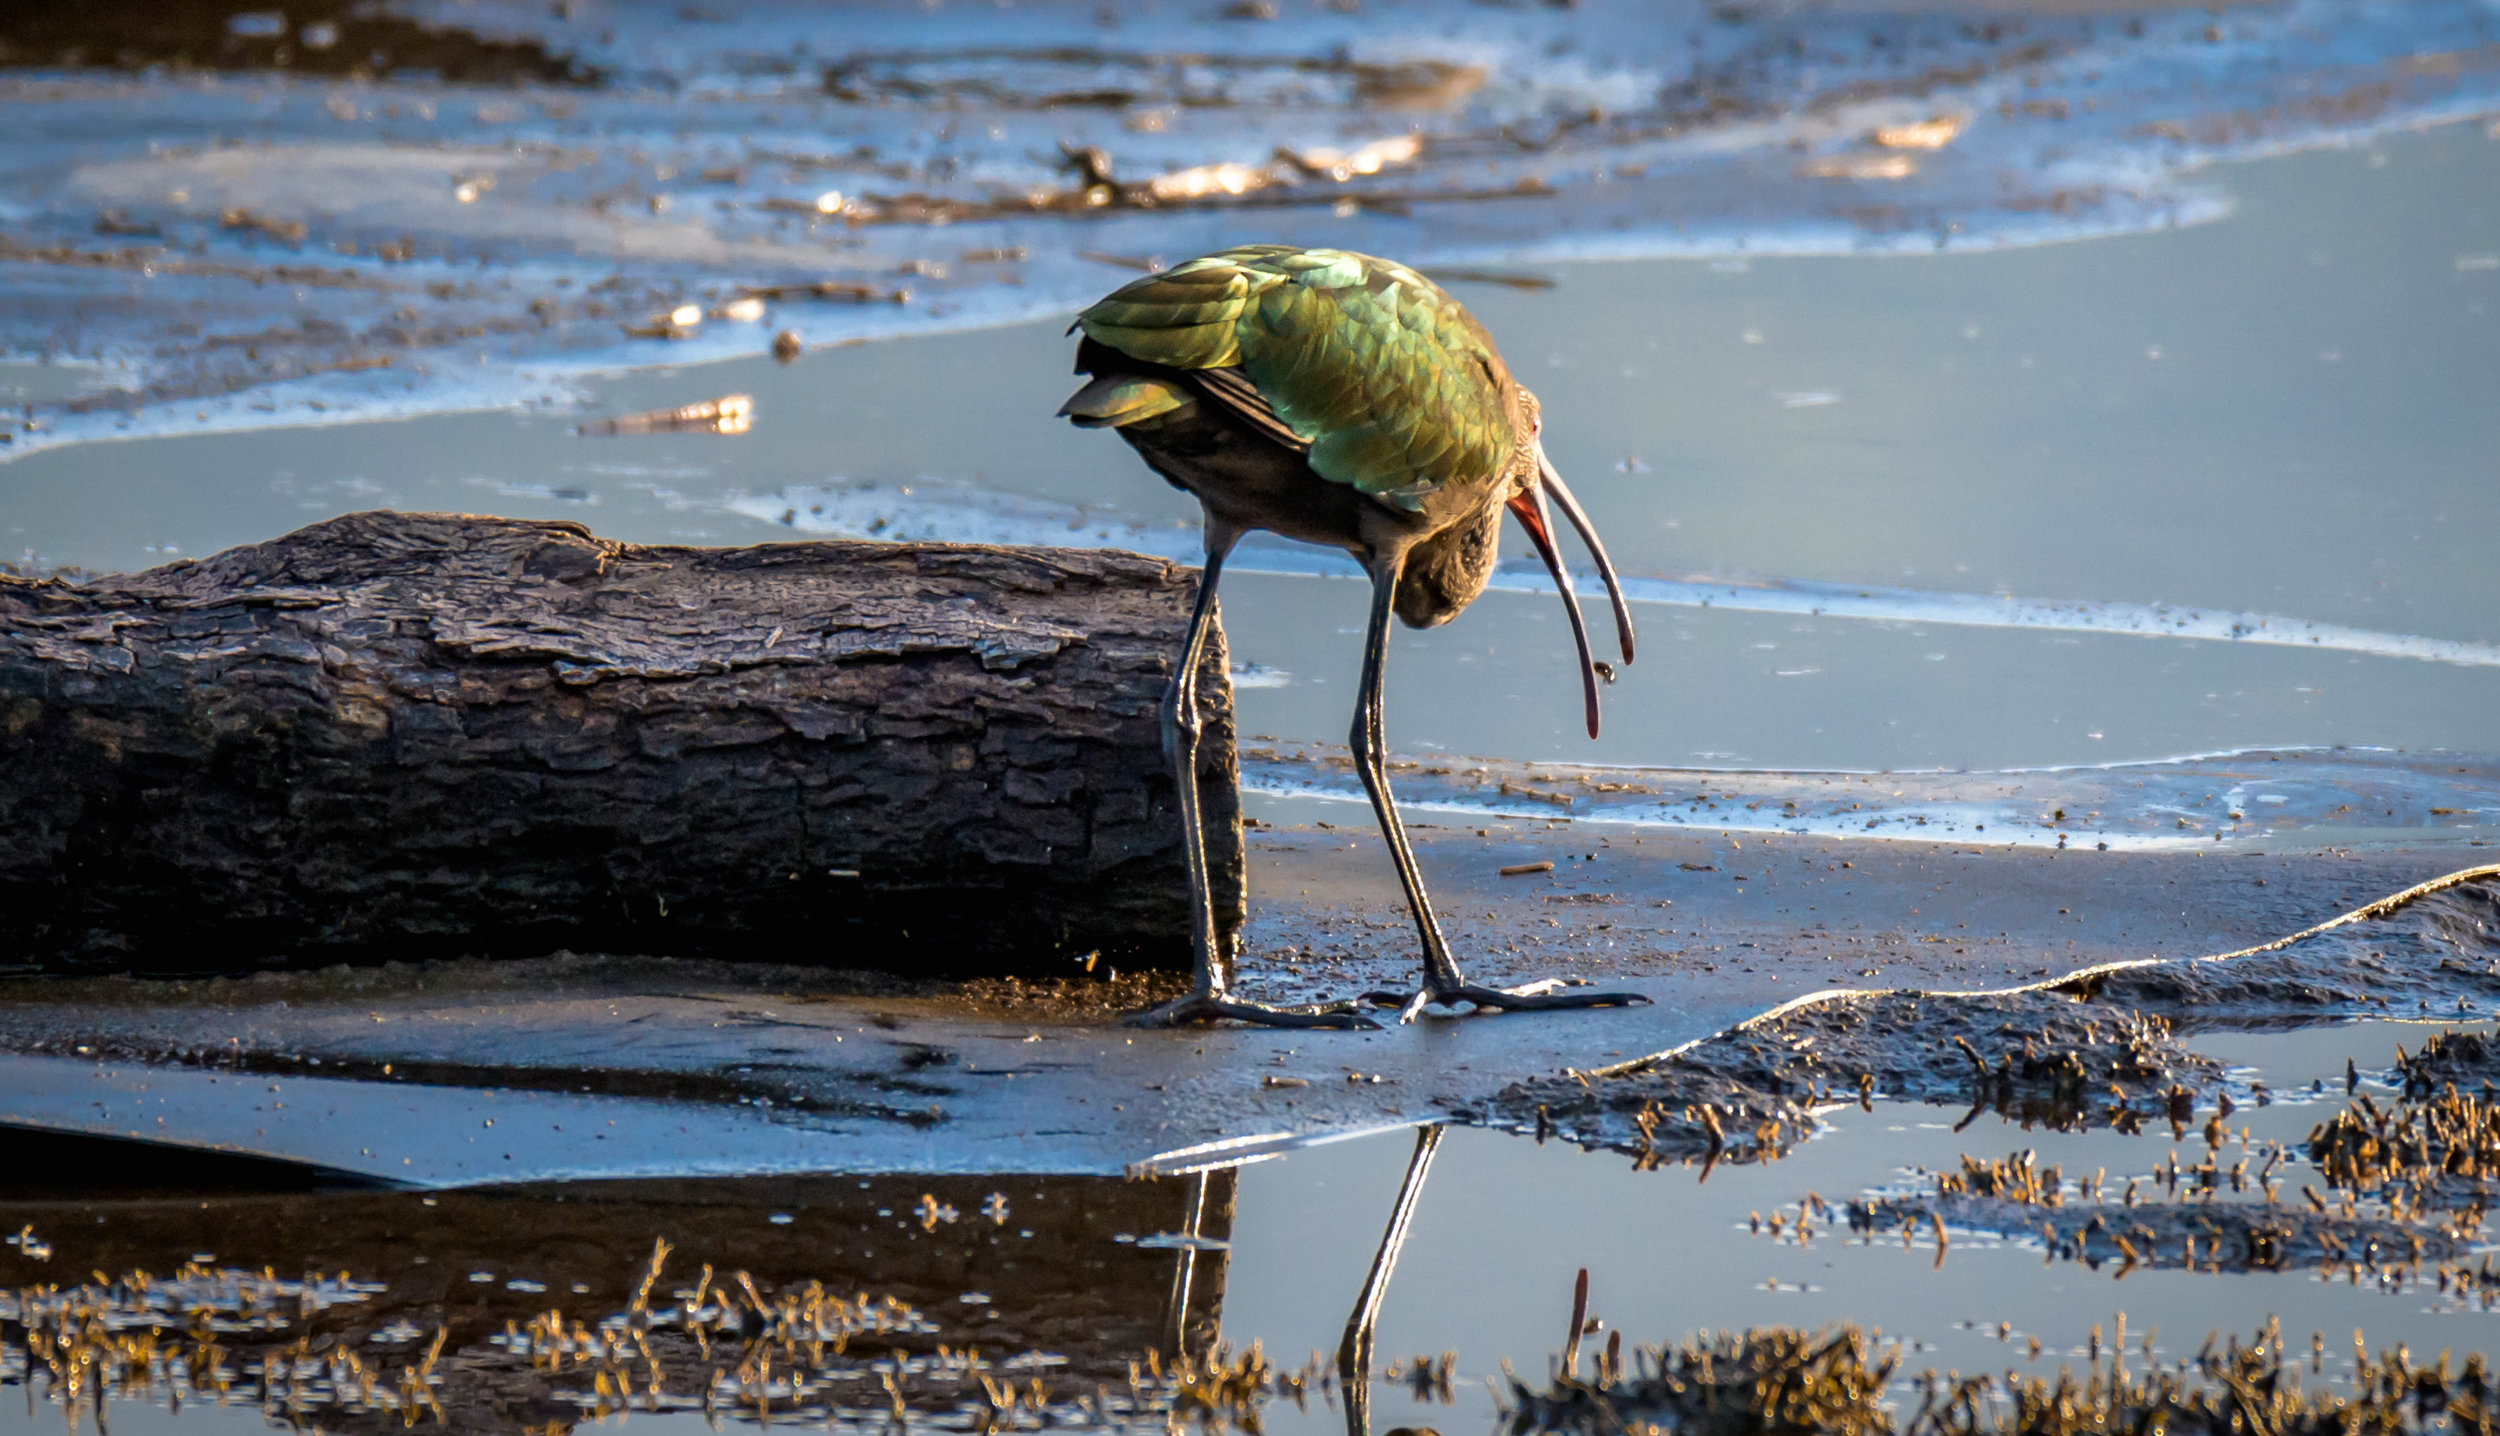 White-faced Ibis - I'll have to take everyone's word he has a white face. I would have named him a Green-butted Ibis since all I ever saw was his keester.